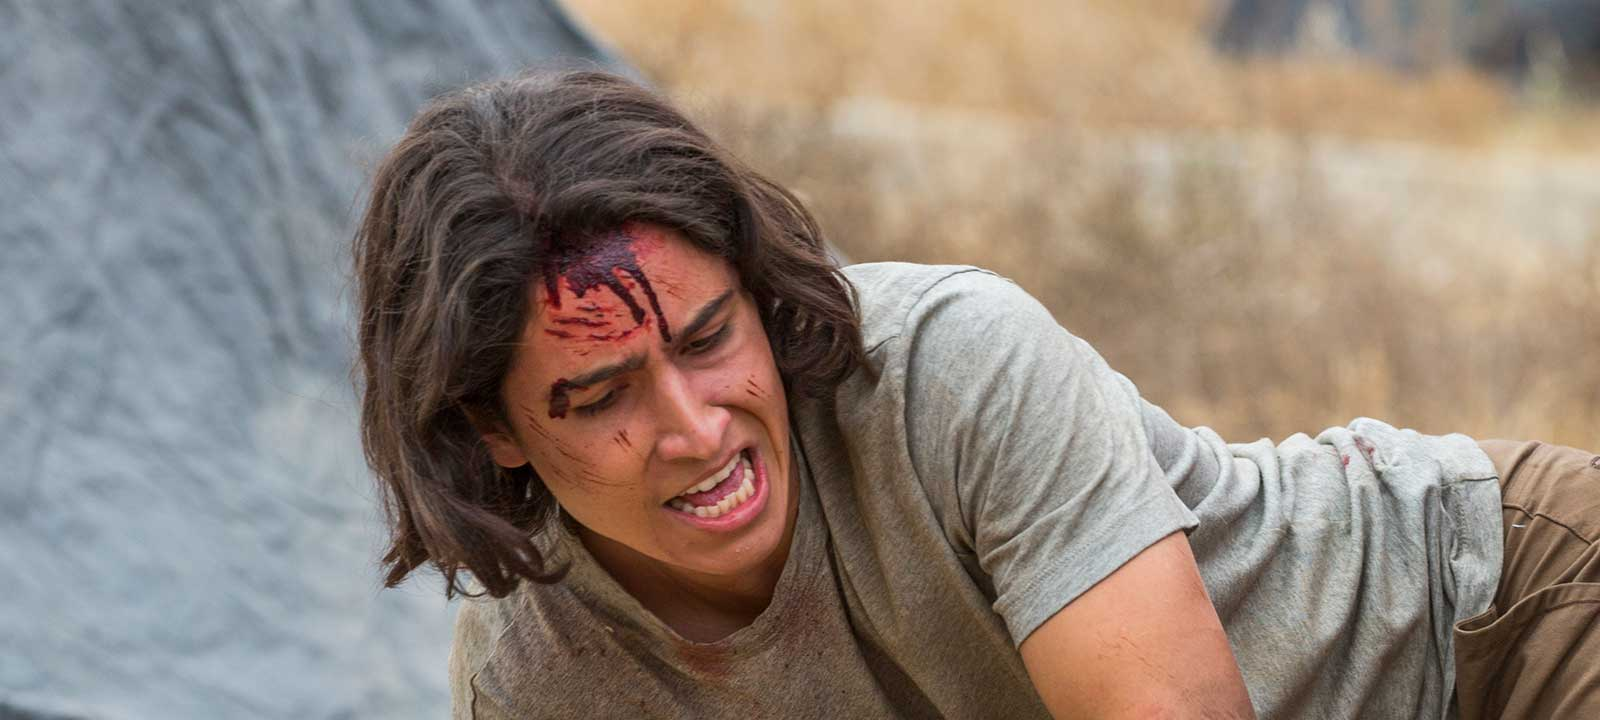 fear-the-walking-dead-episode-214-chris-henrie-800×600-interview